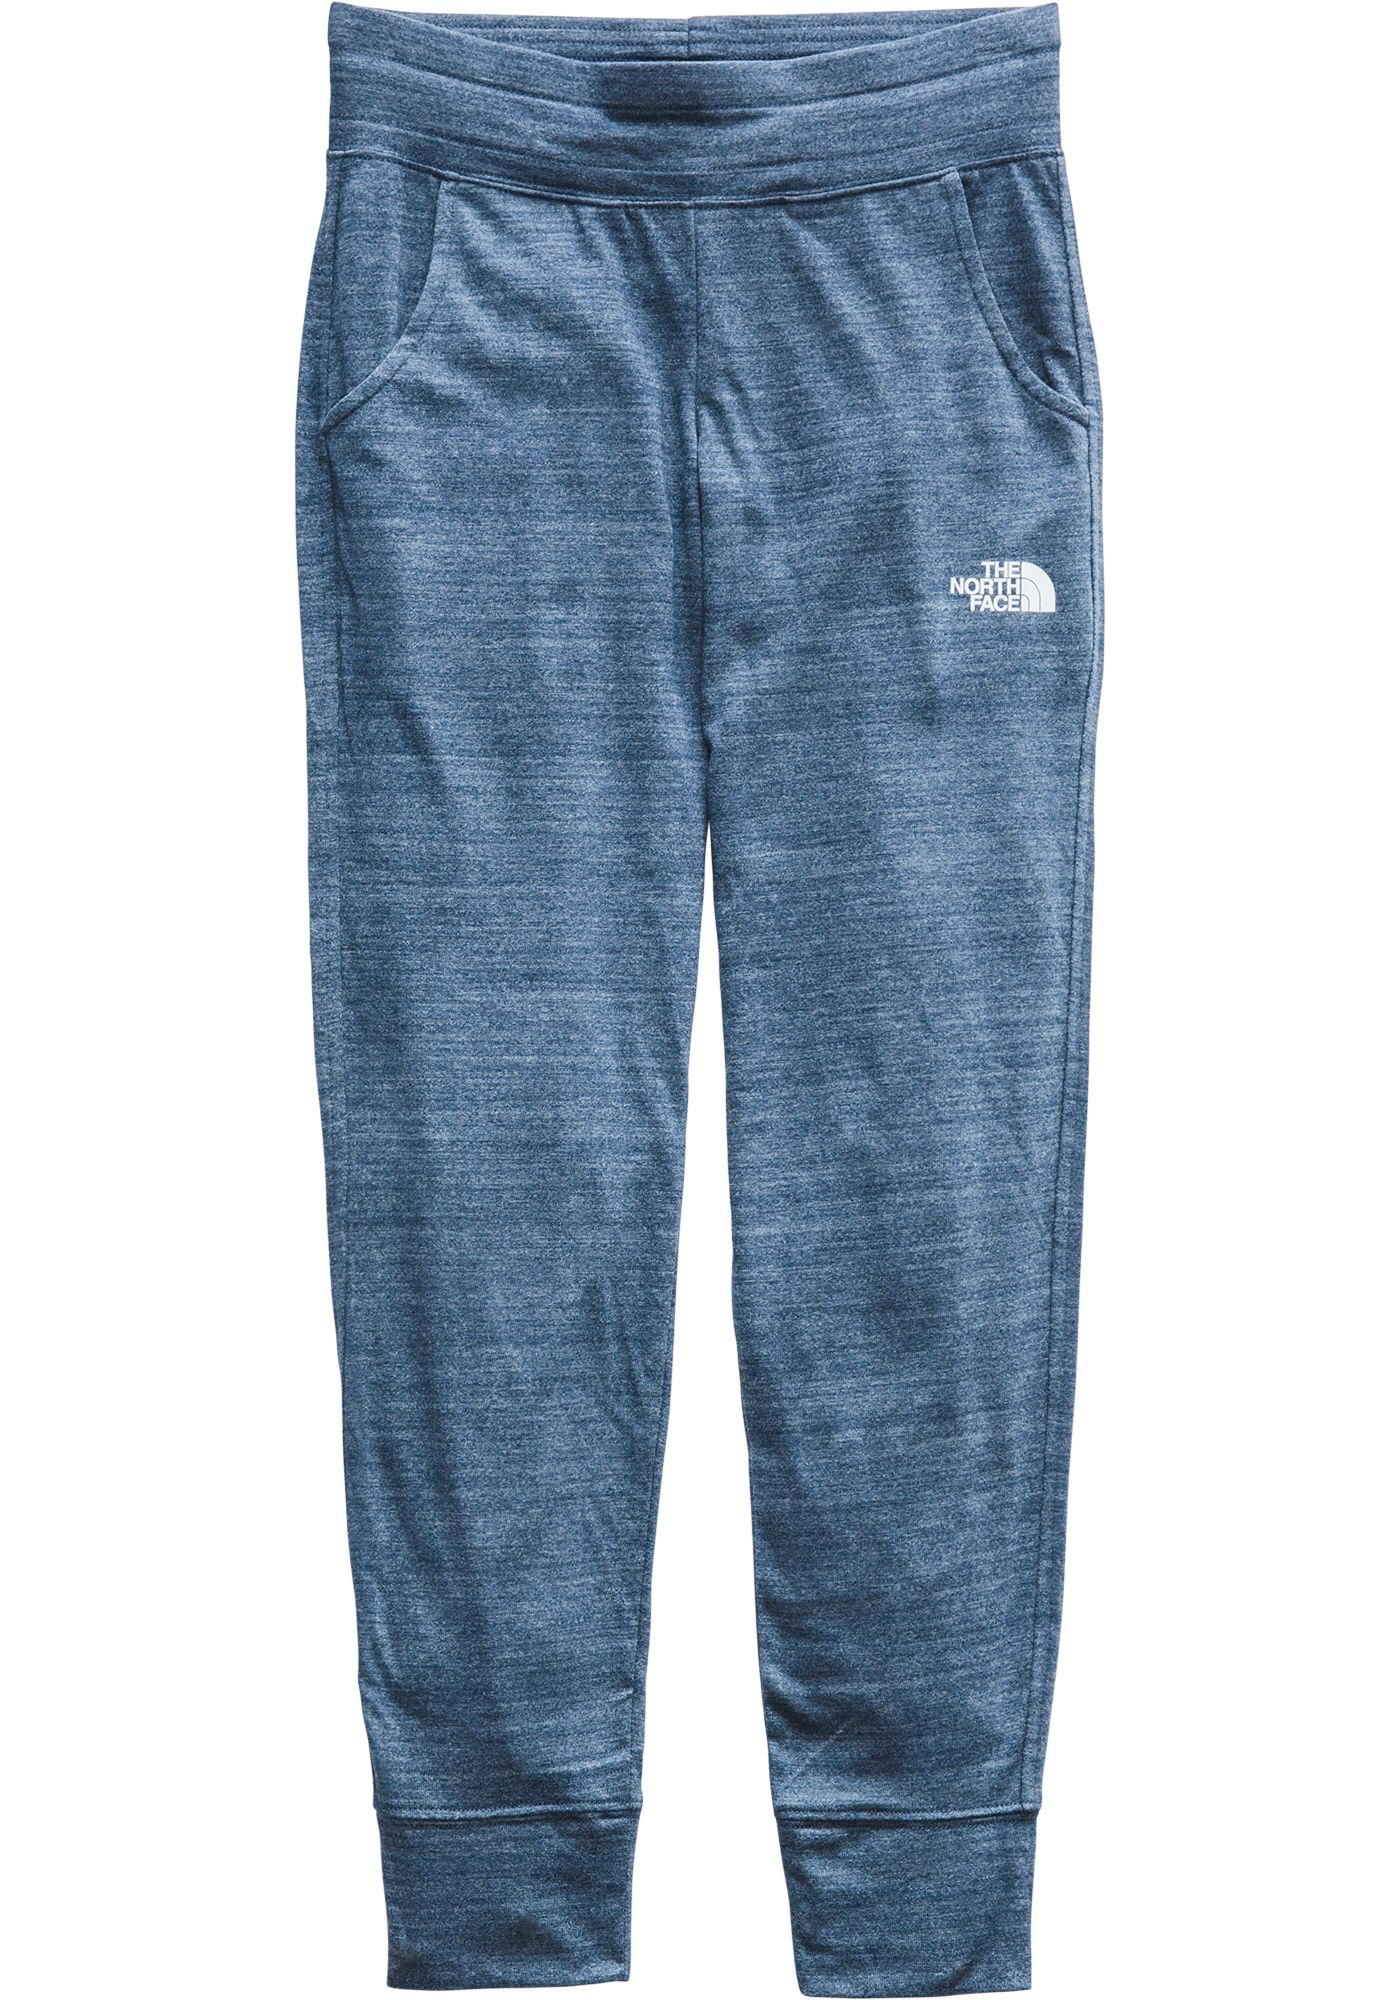 The North Face Girls' Tri-Blend Jogger Pants